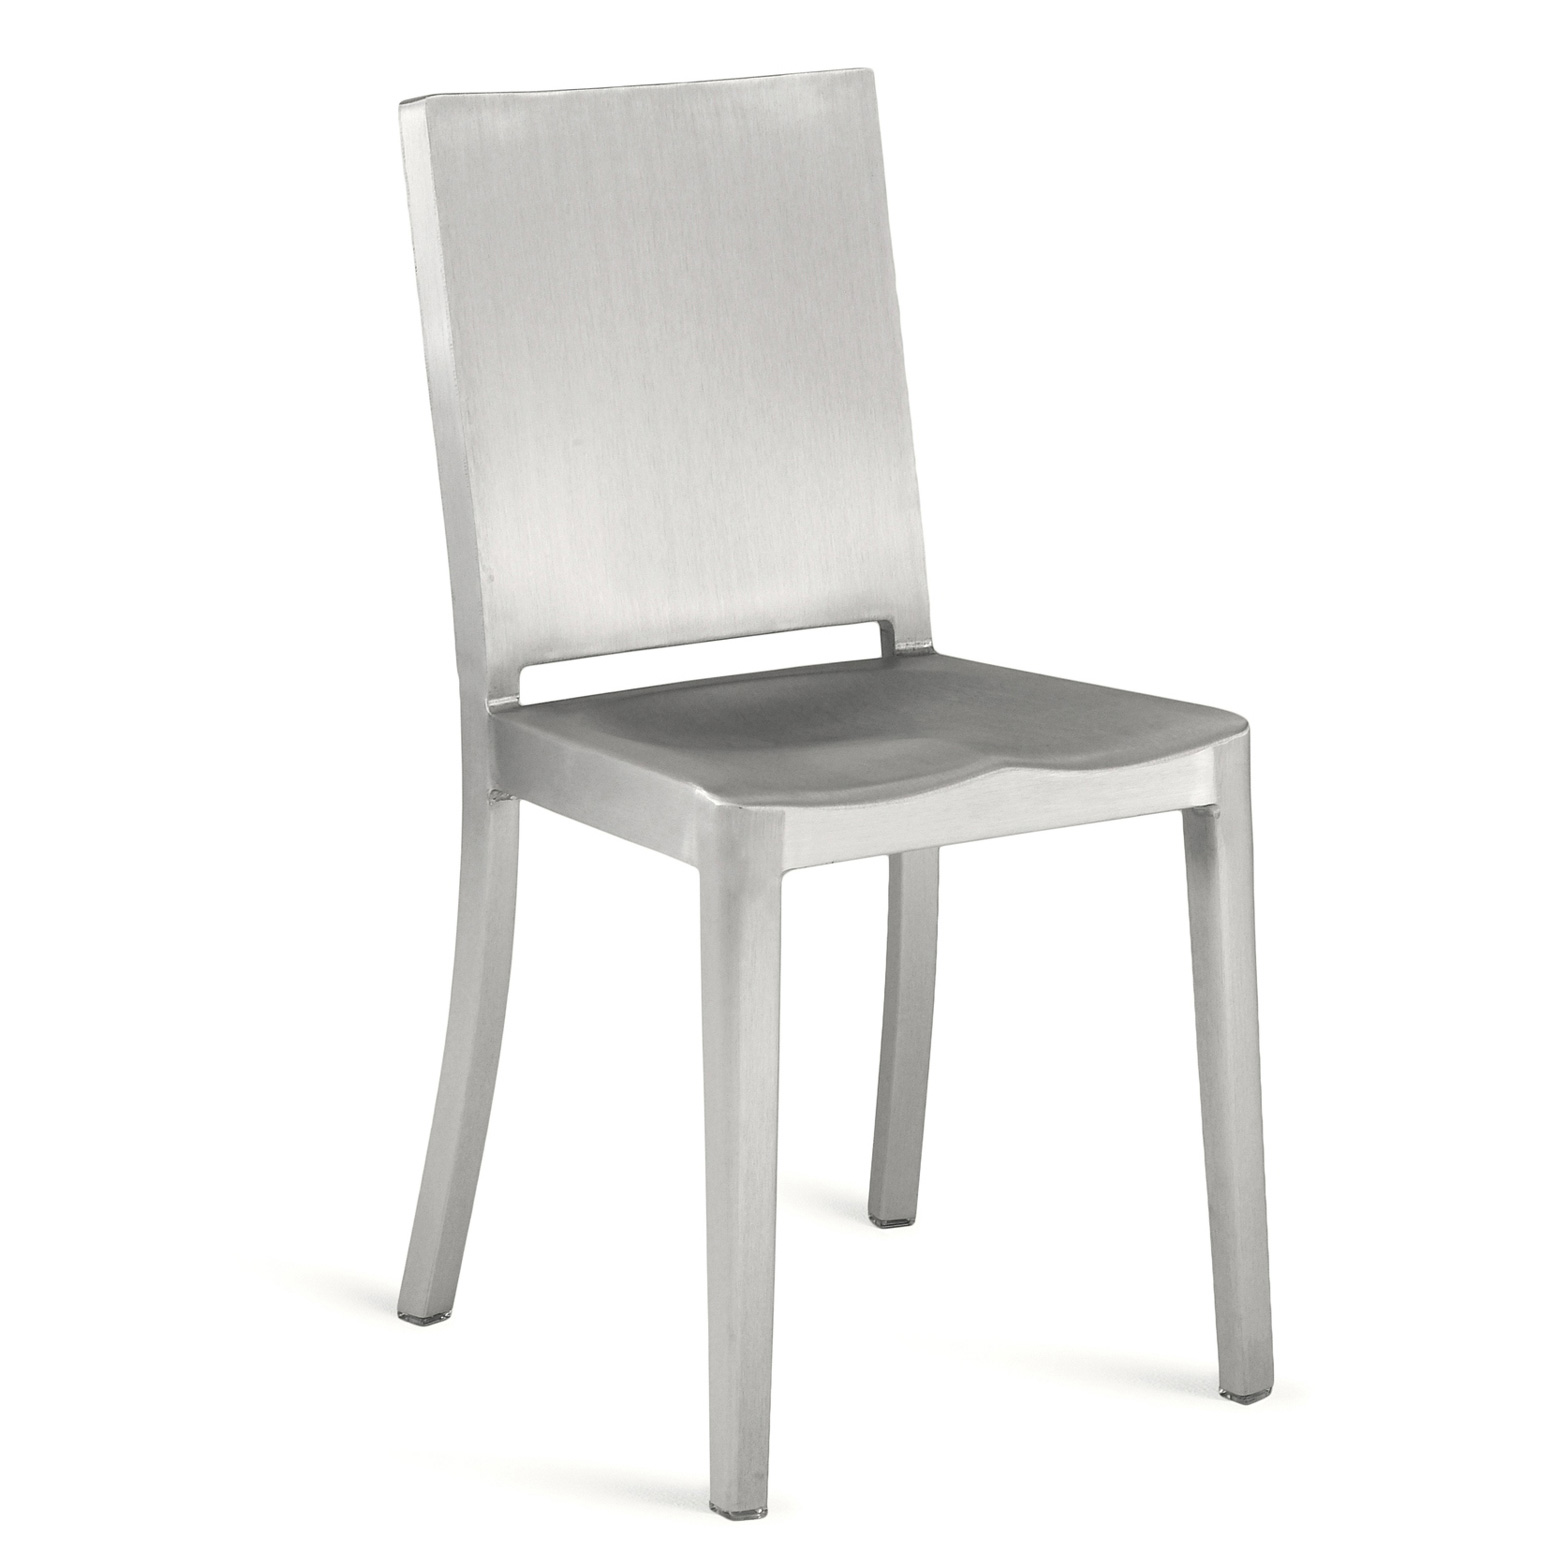 Emeco Hudson Chair Aluminium Brushed Designed by Philippe Starck